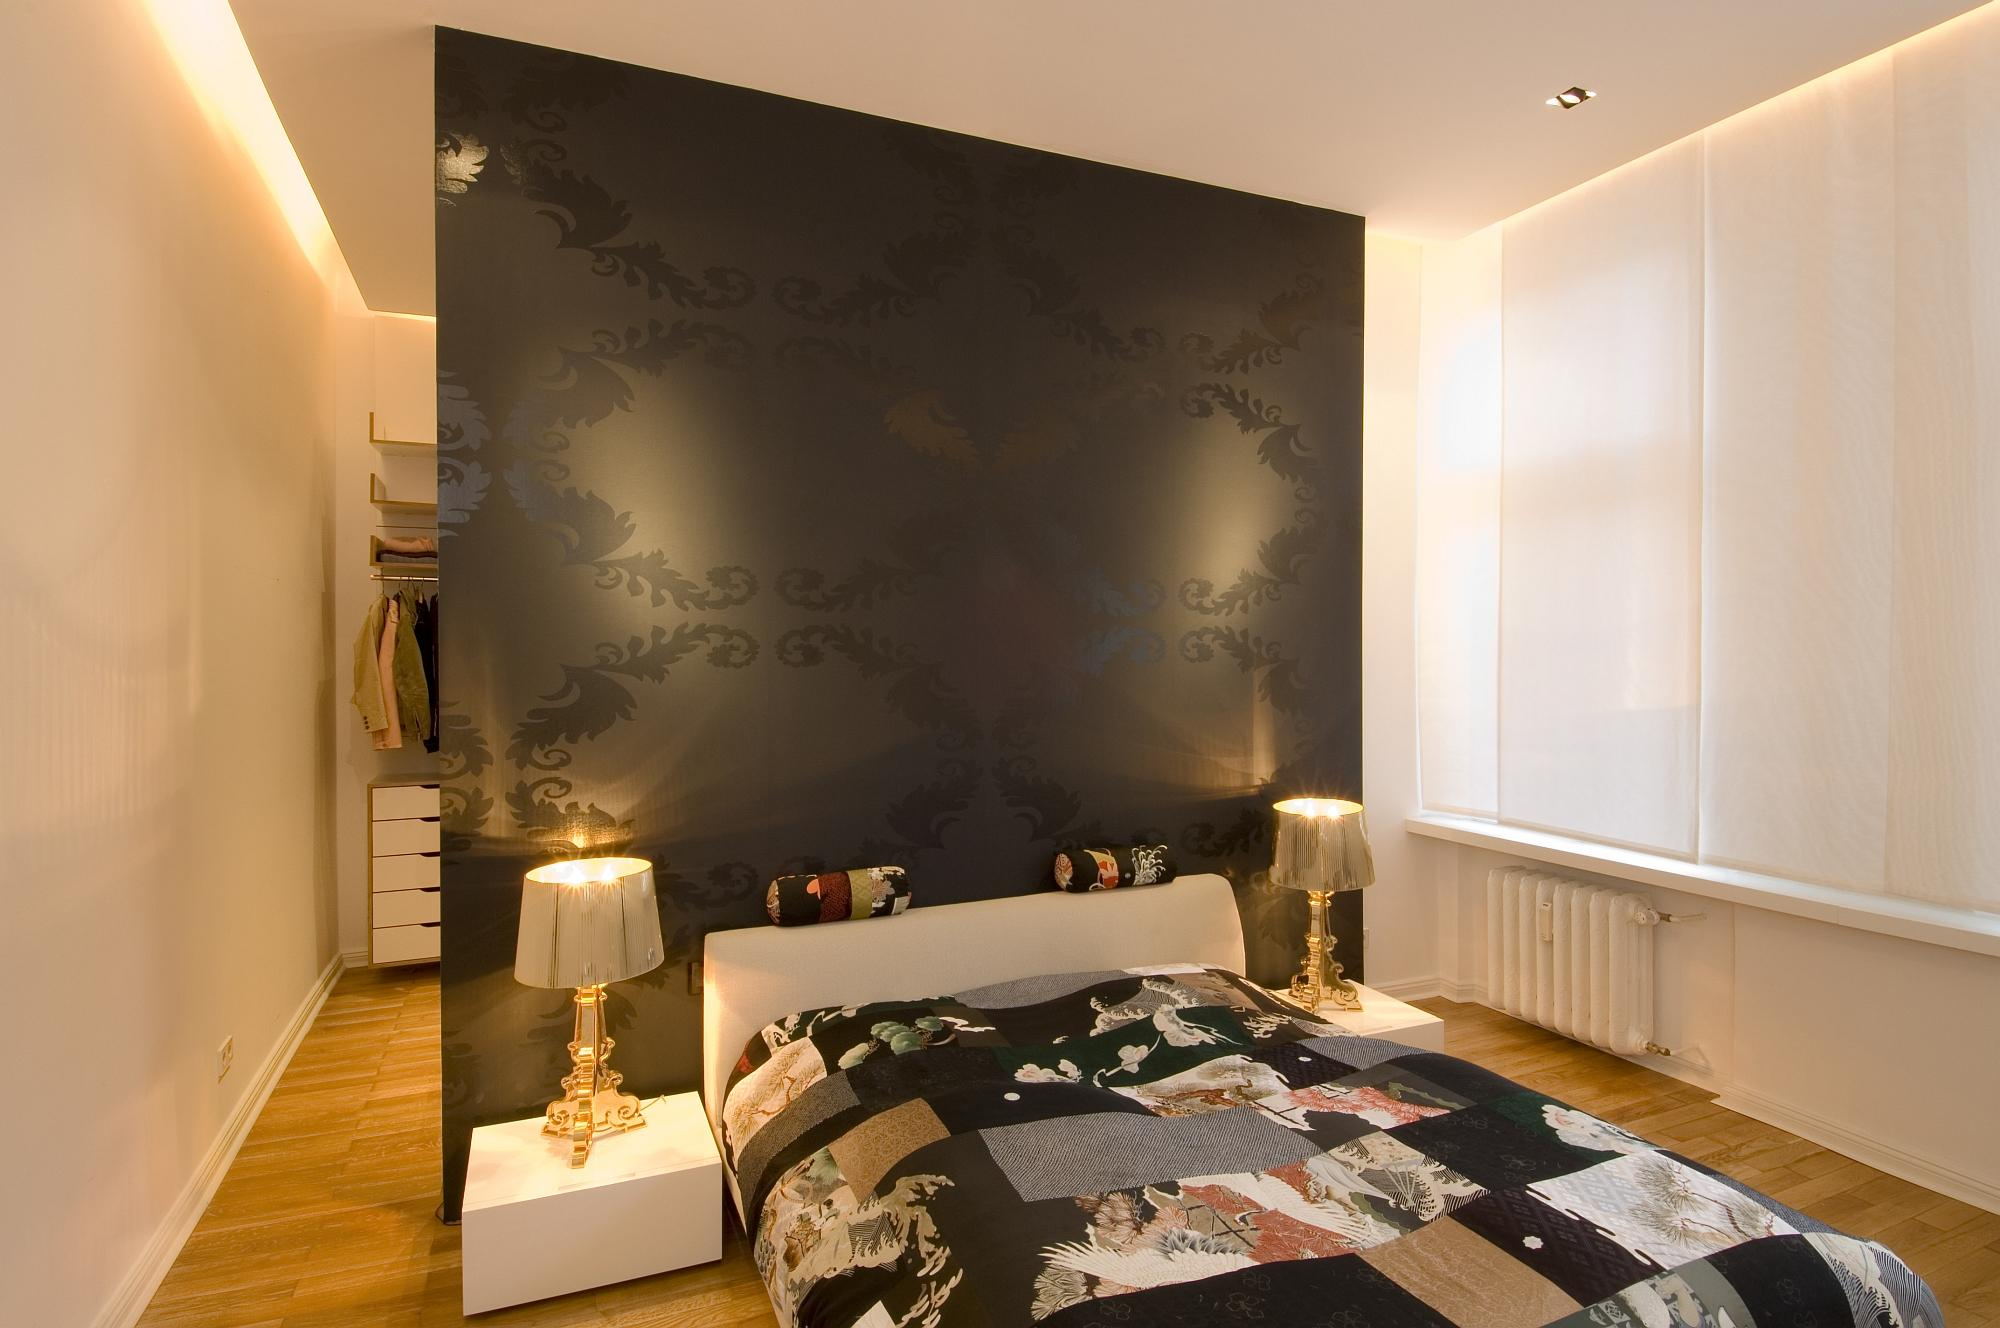 Apartment Berlin-Wilmersdorf #bett #tagesdecke ©www.berlinrodeo.com